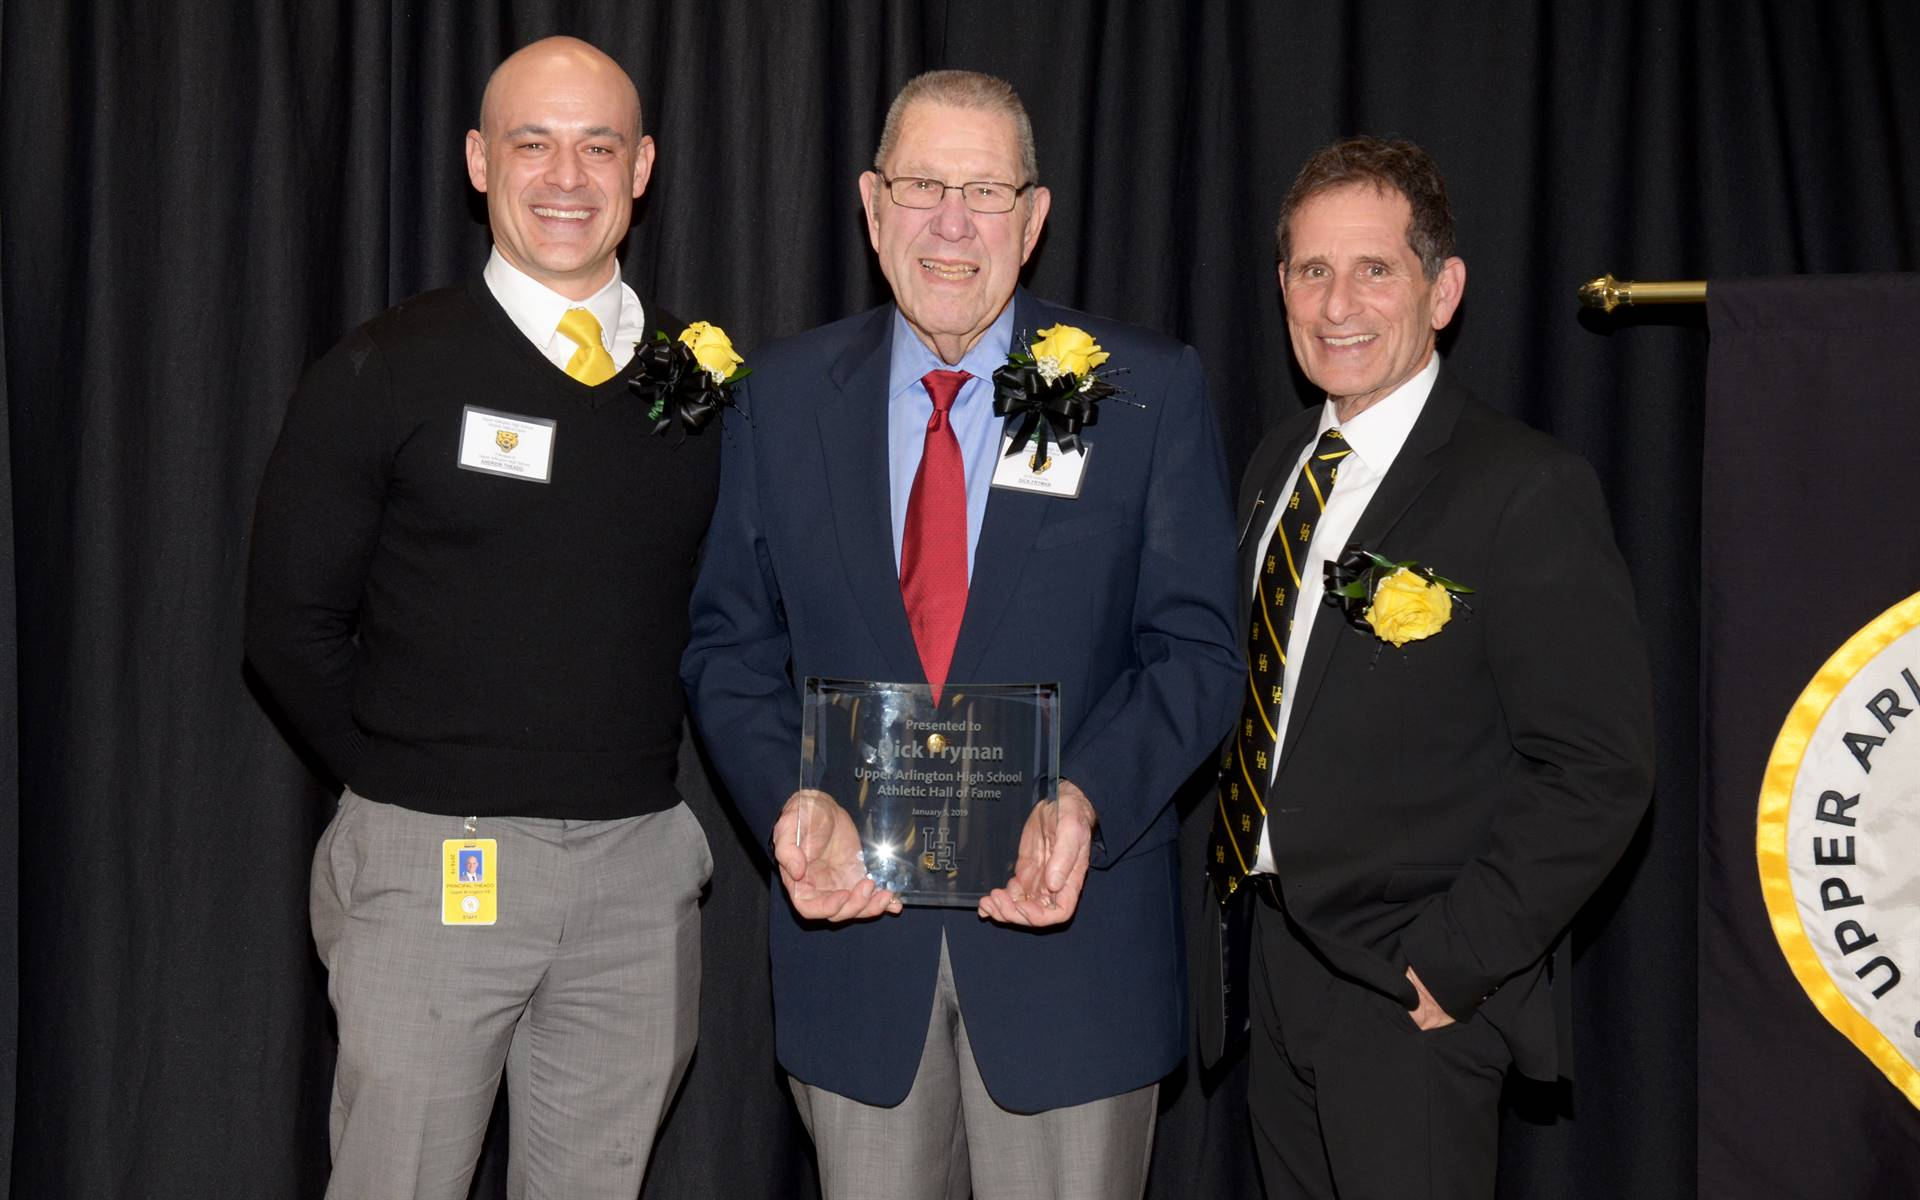 Inductee Dick Fryman with Principal Andrew Theado and Athletic Director Tony Pusateri